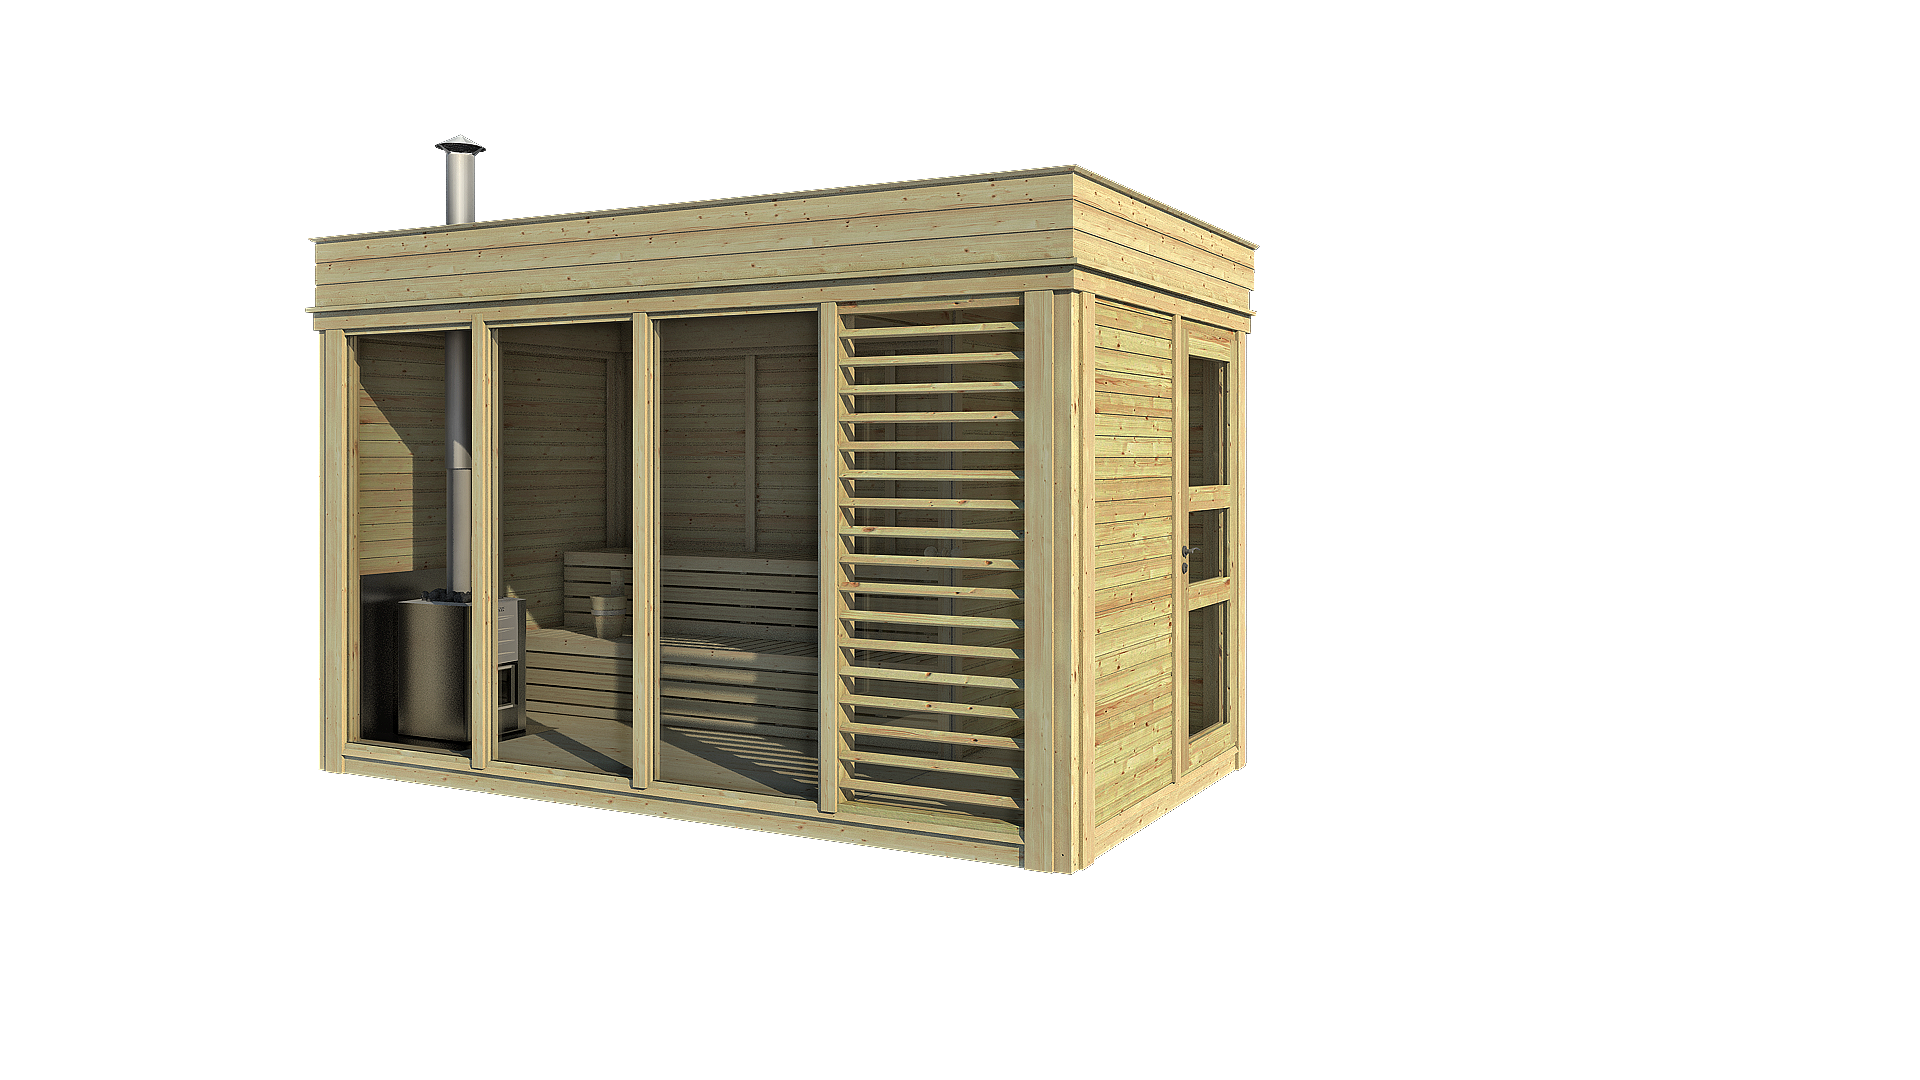 gartensauna sauna cube 4 x 2 m breite x tiefe aus fichtenholz garten cube kube gartenhaus. Black Bedroom Furniture Sets. Home Design Ideas